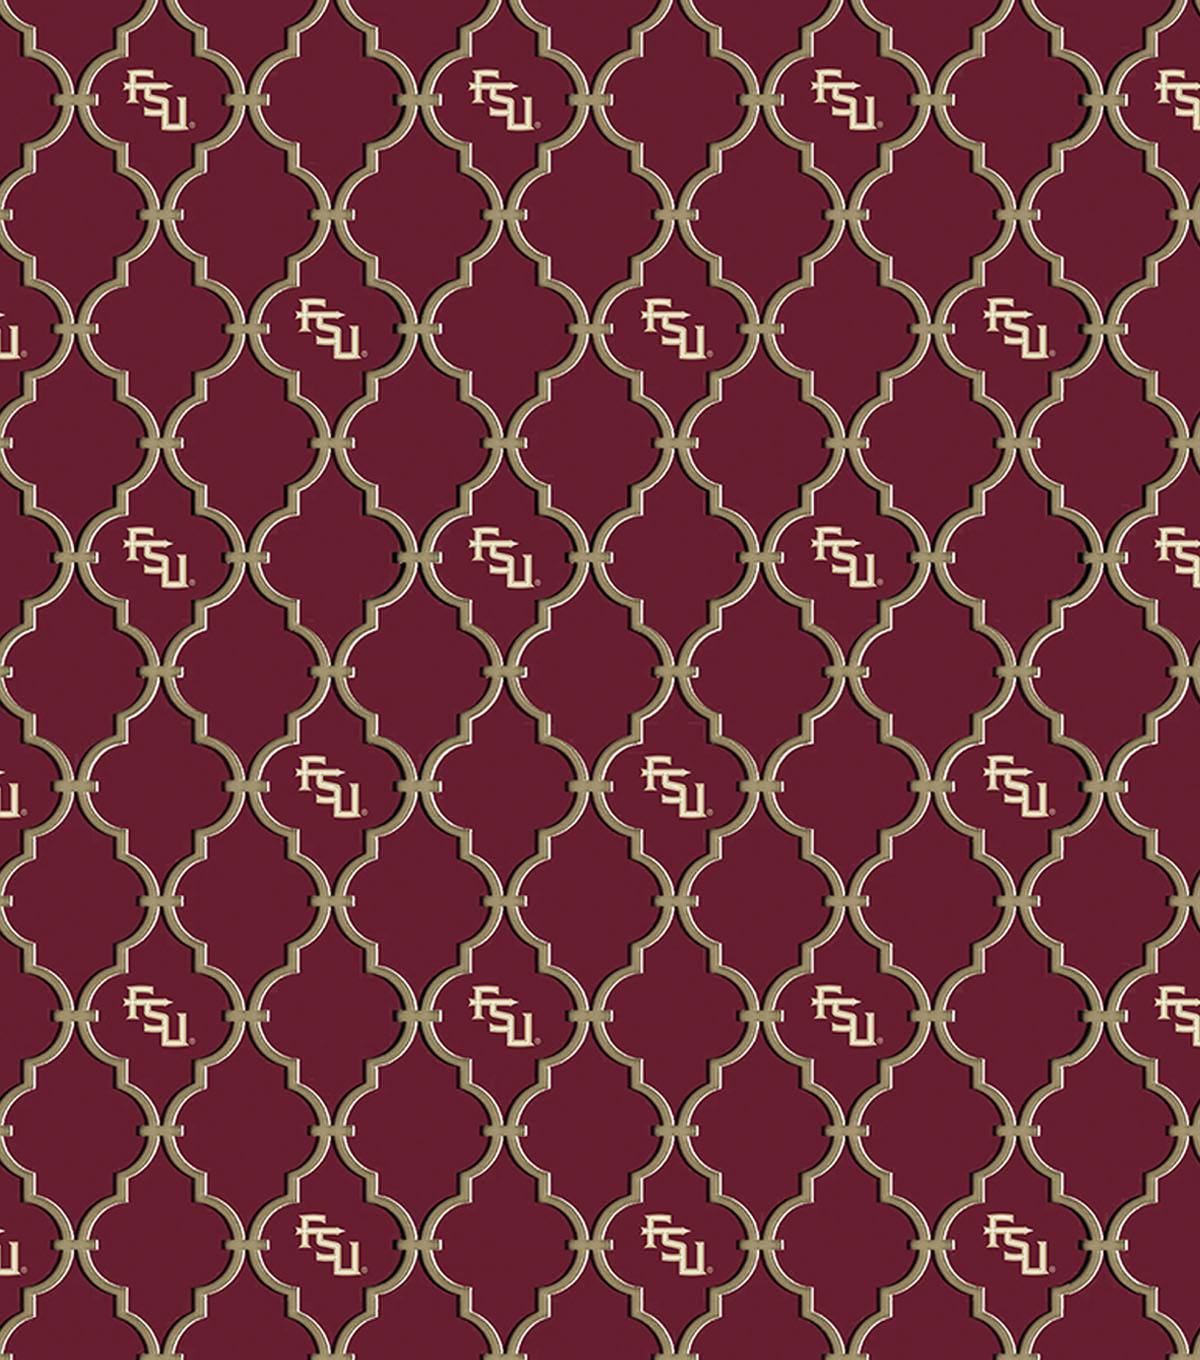 College Teams Florida State Seminoles Cotton Fabric -Trellis